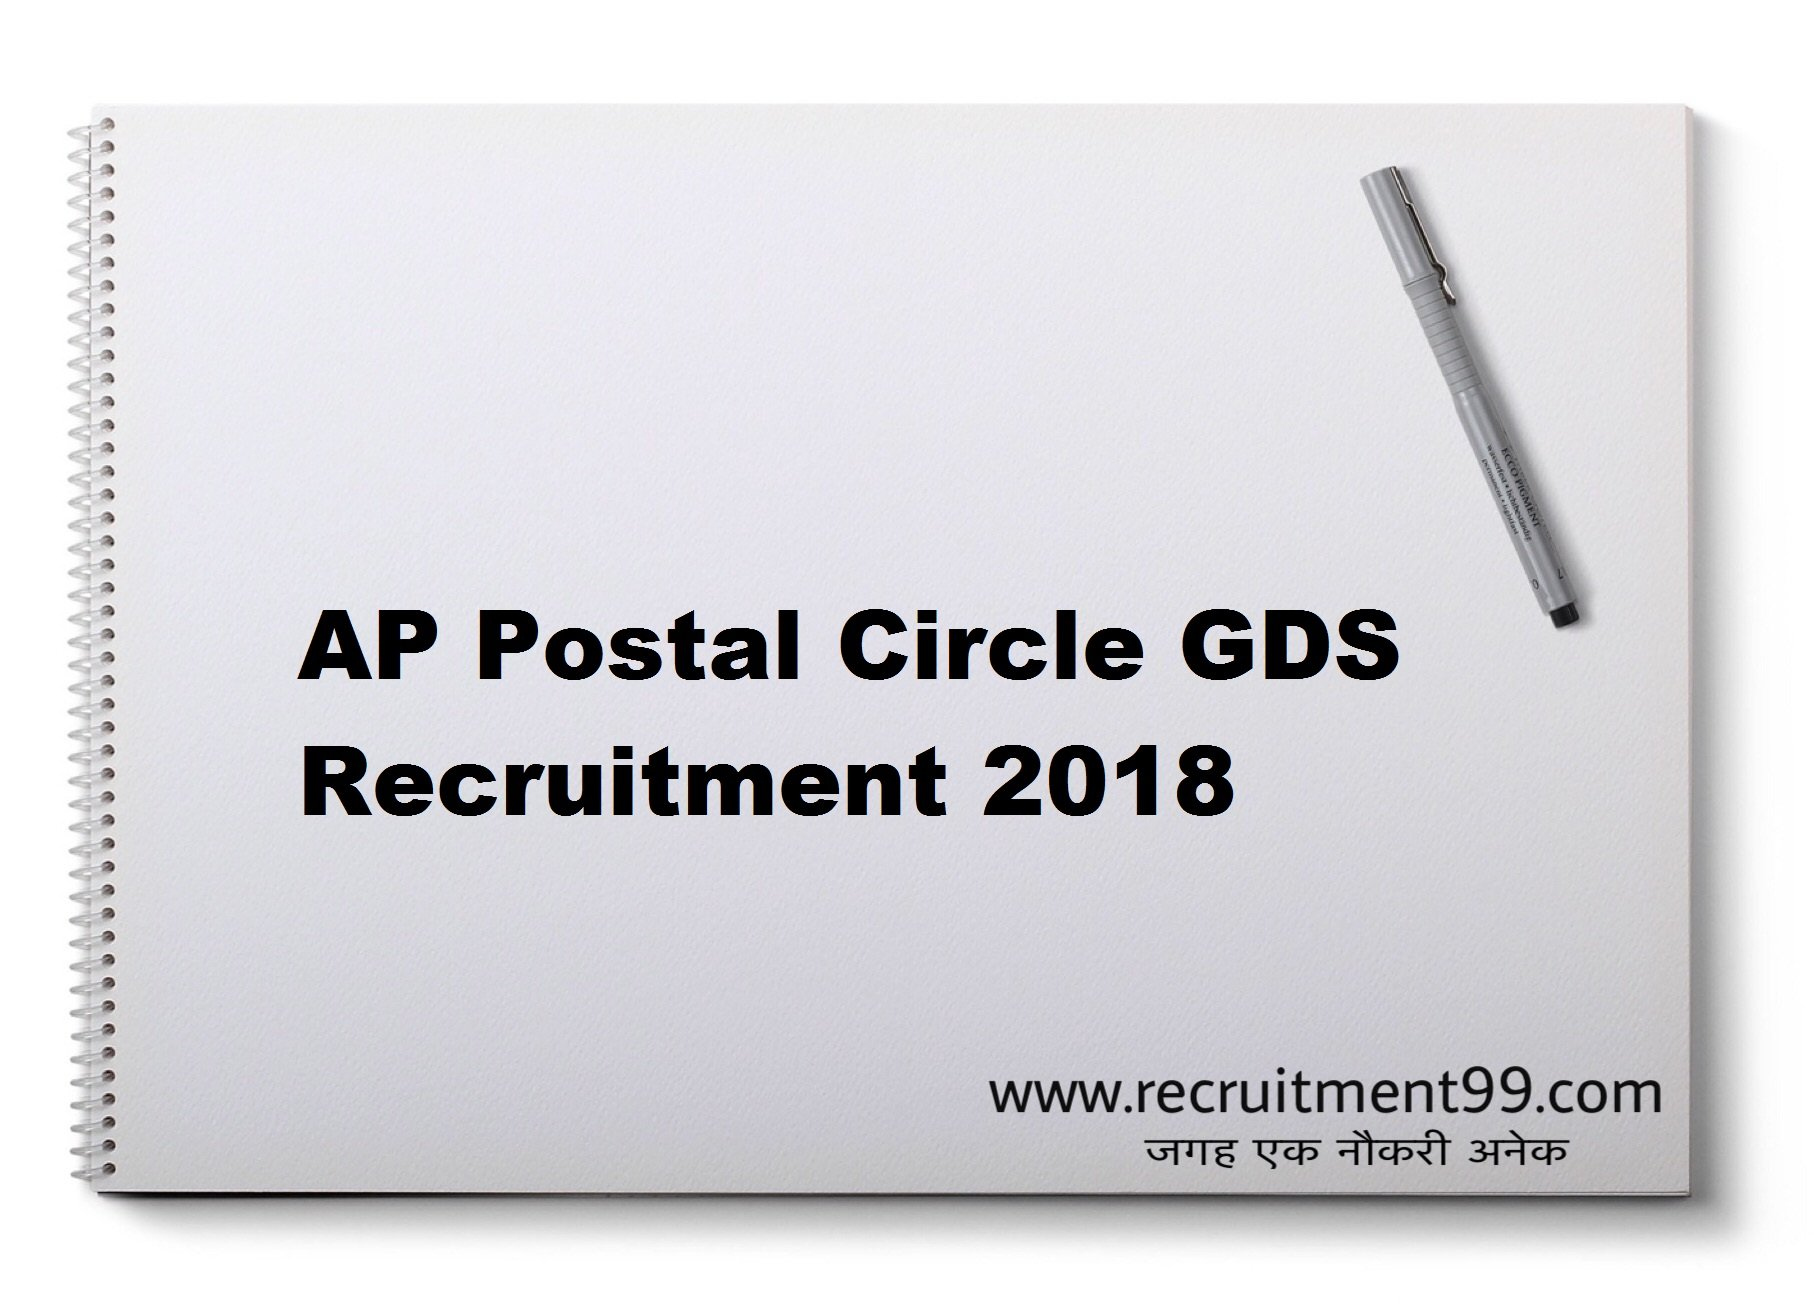 AP Postal Circle GDS Recruitment Admit Card Result 2018